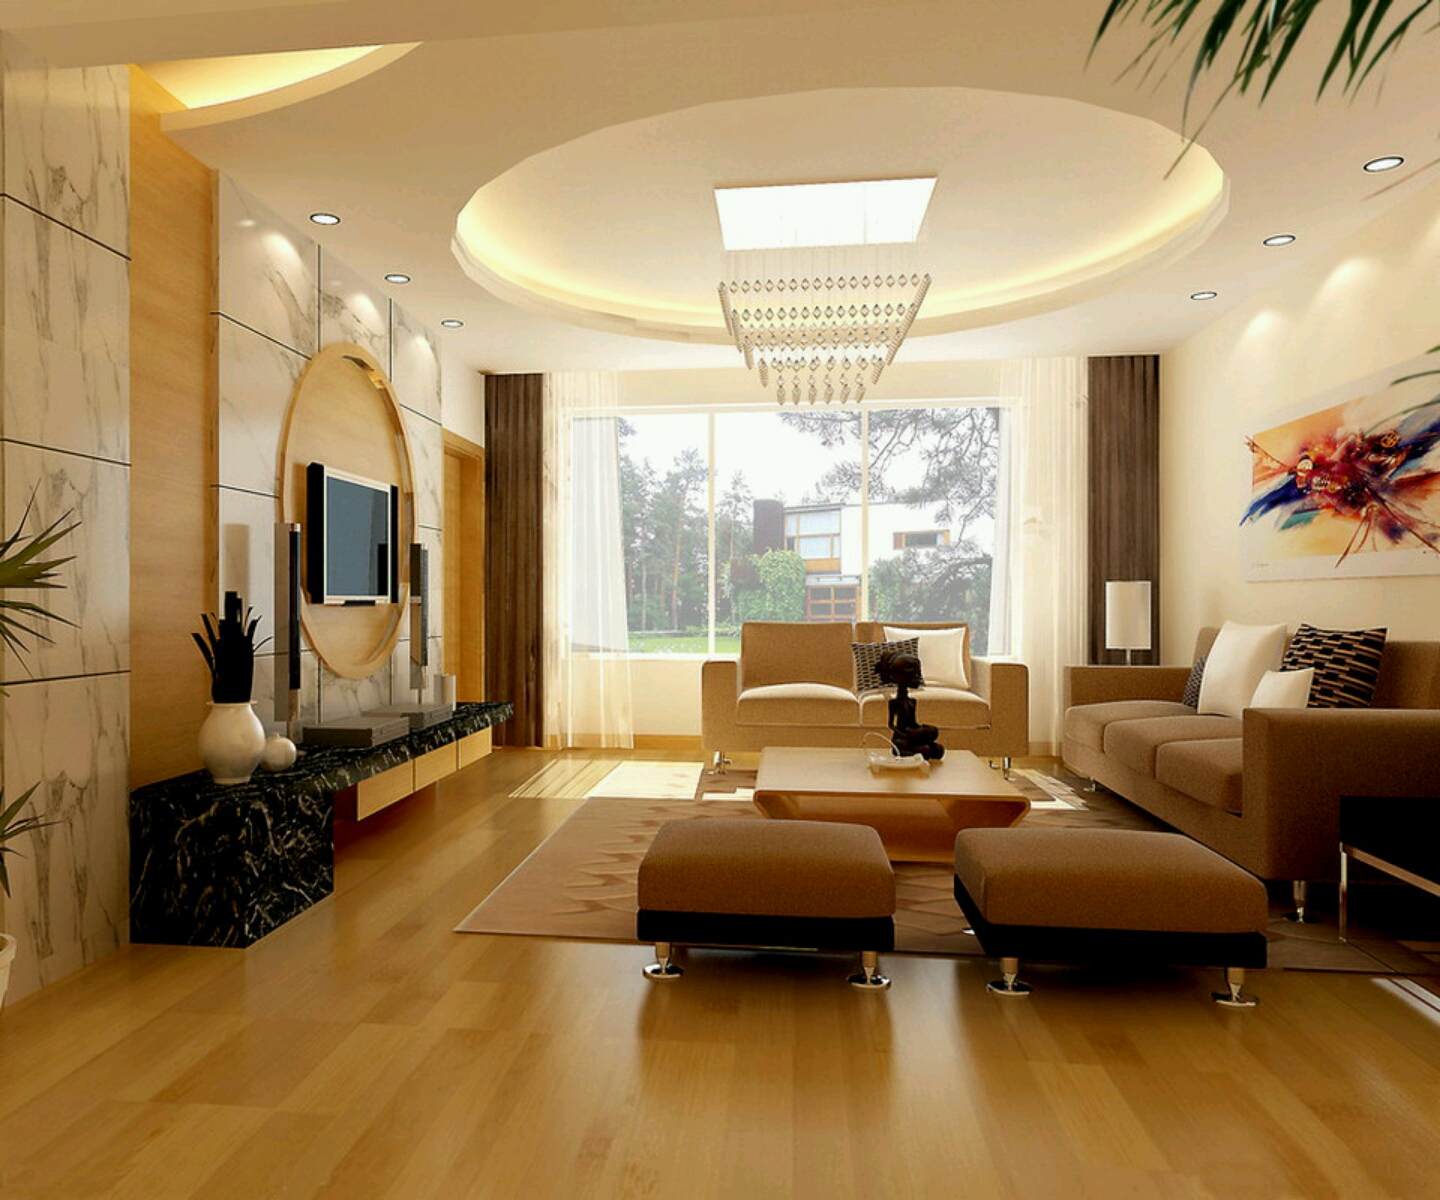 Modern interior decoration living rooms ceiling designs for Decorated living rooms photos